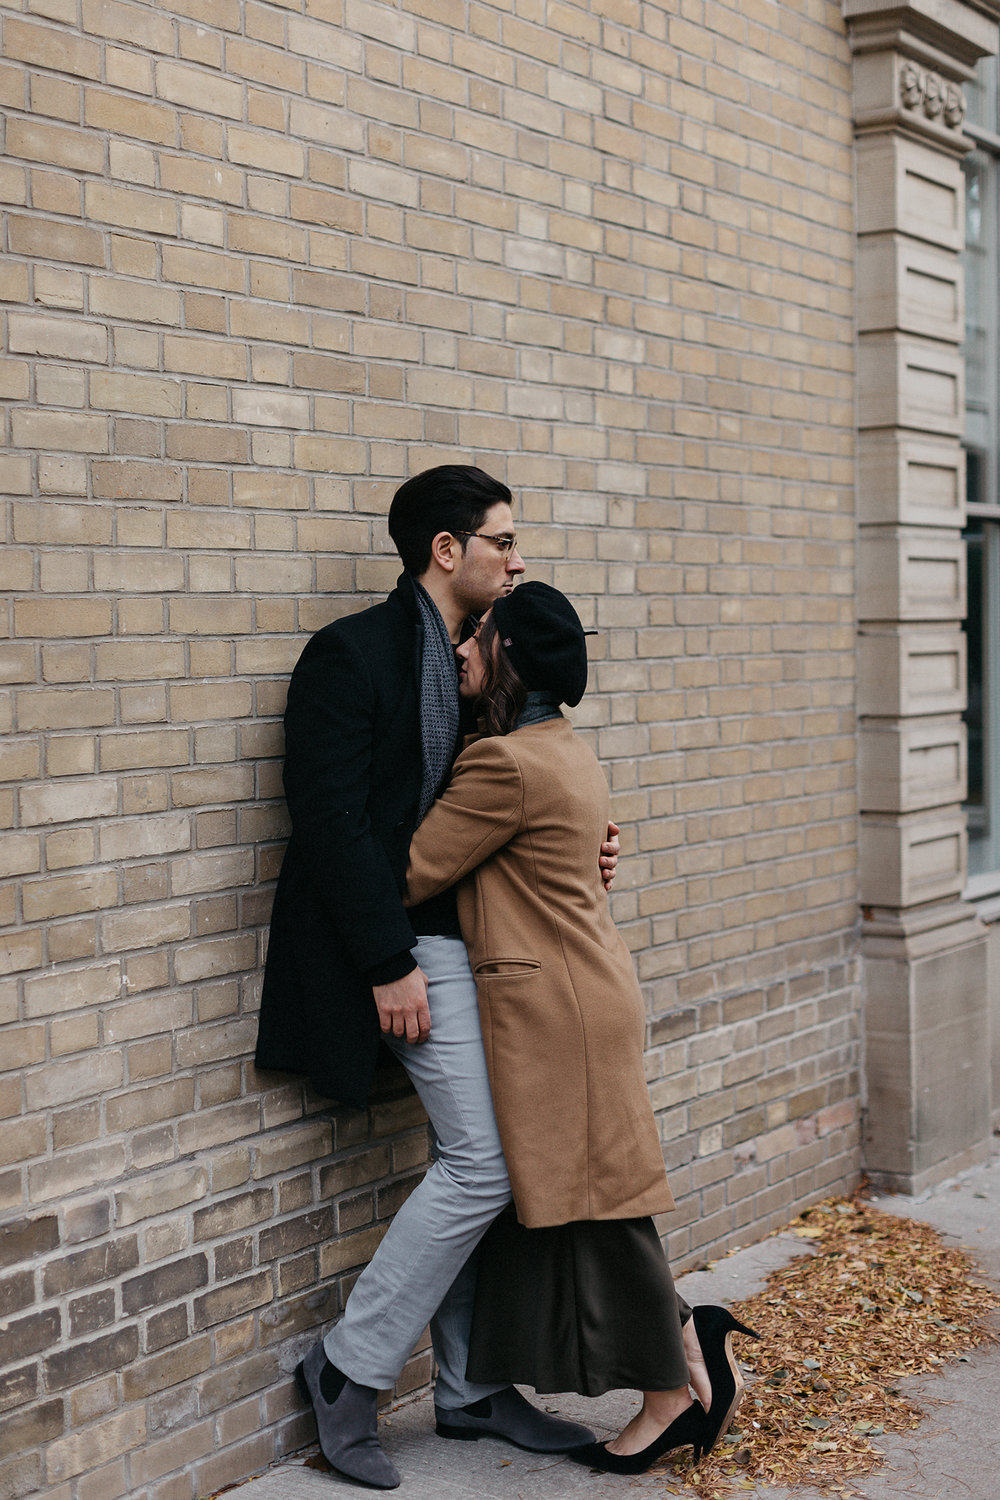 alternative-engagement-photographer-lifestyle-session-ryanne-hollies-photography-toronto-st-james-park-editorial-high-fashion-shoot-city-urban-mens-womens-fashion-magazine-cover-intimate-alleyway.jpg